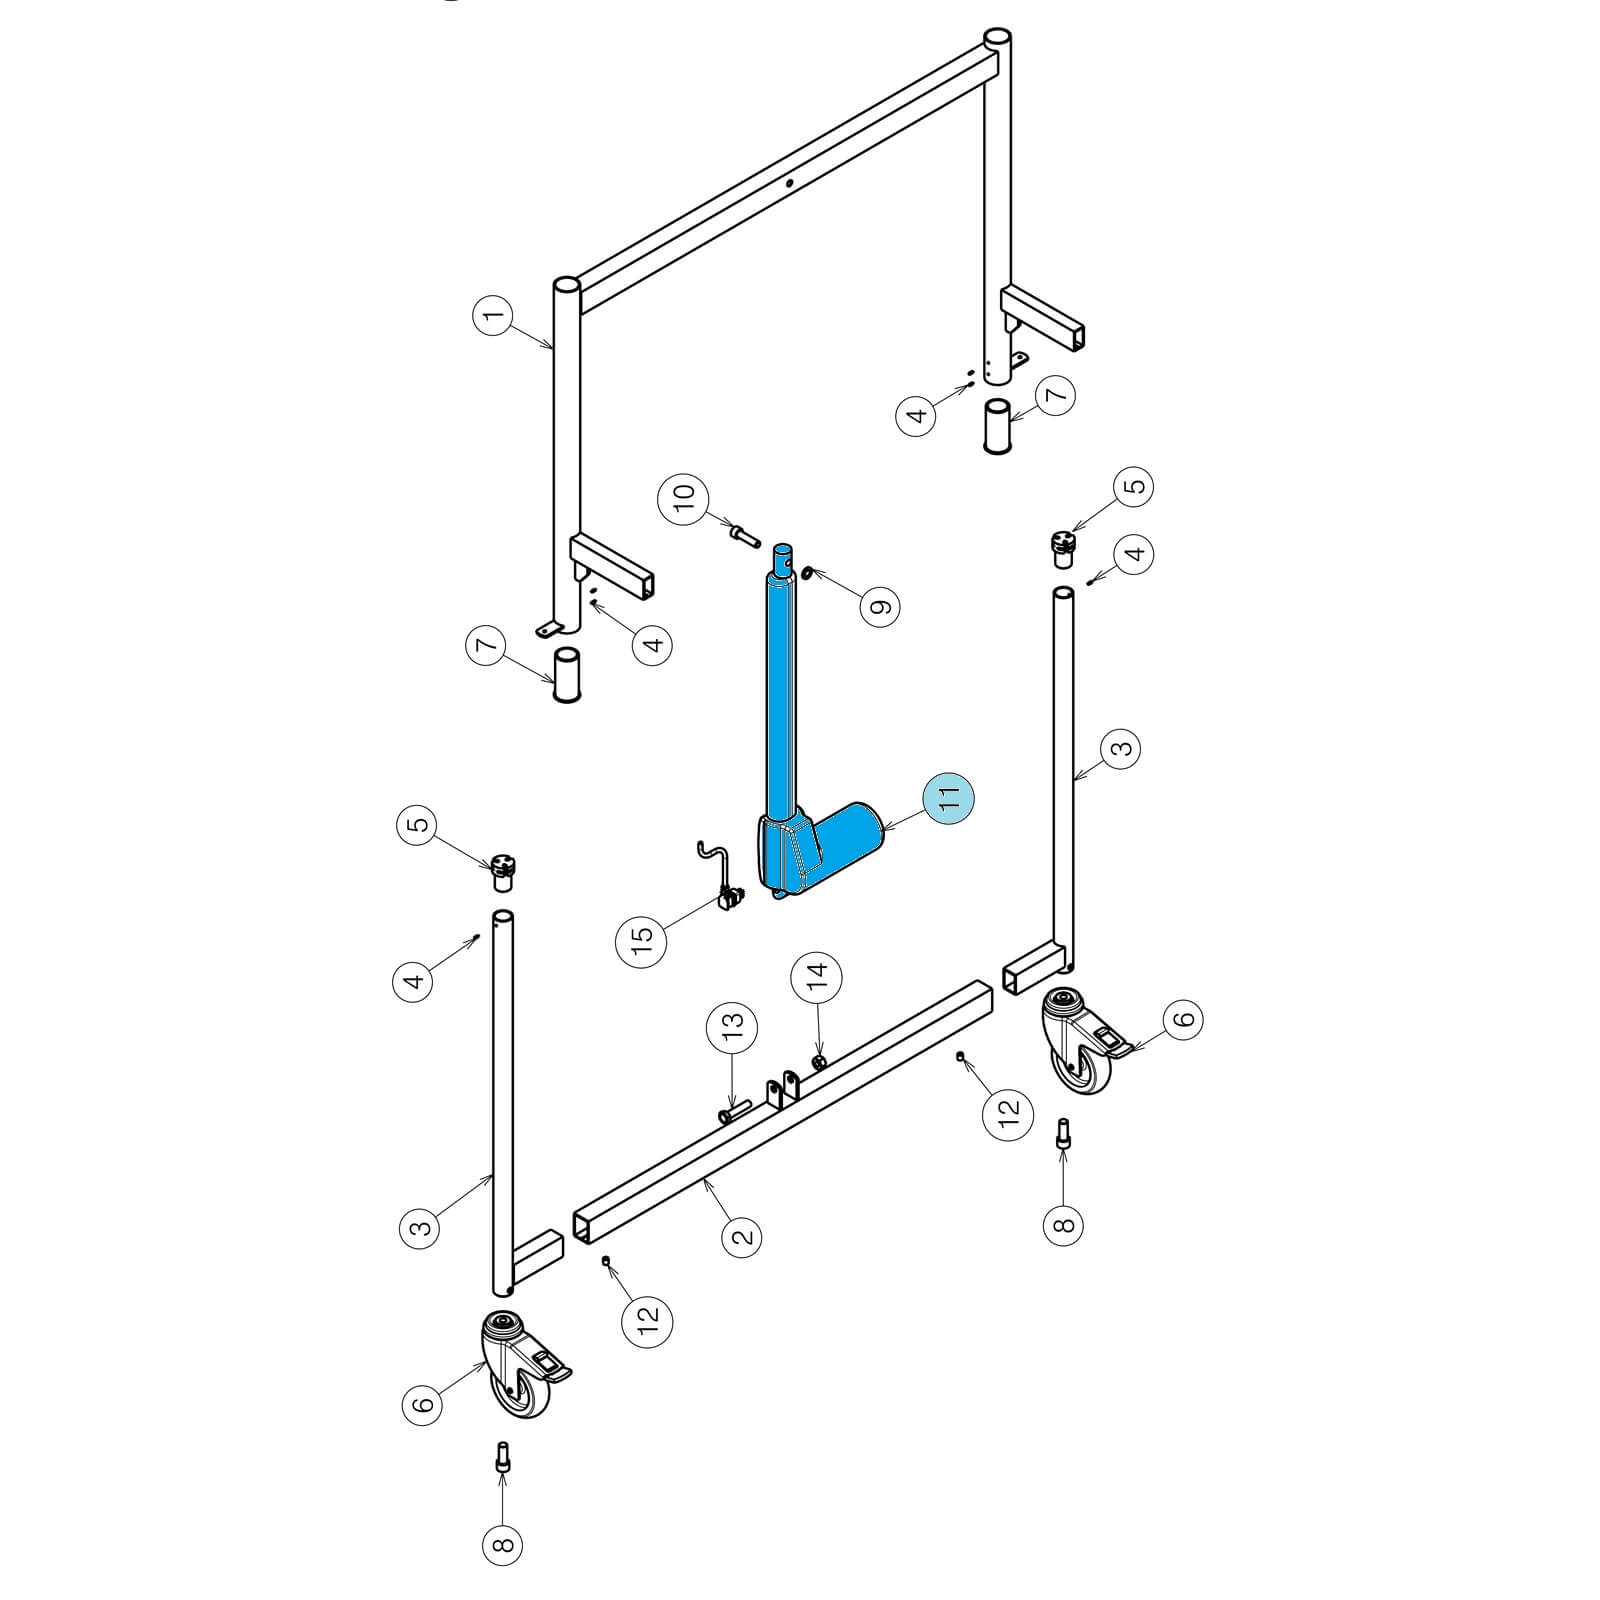 hight resolution of rcs actuator wiring diagram rcs mar 10 wiring diagram limitorque l120 40 wiring diagrams 17